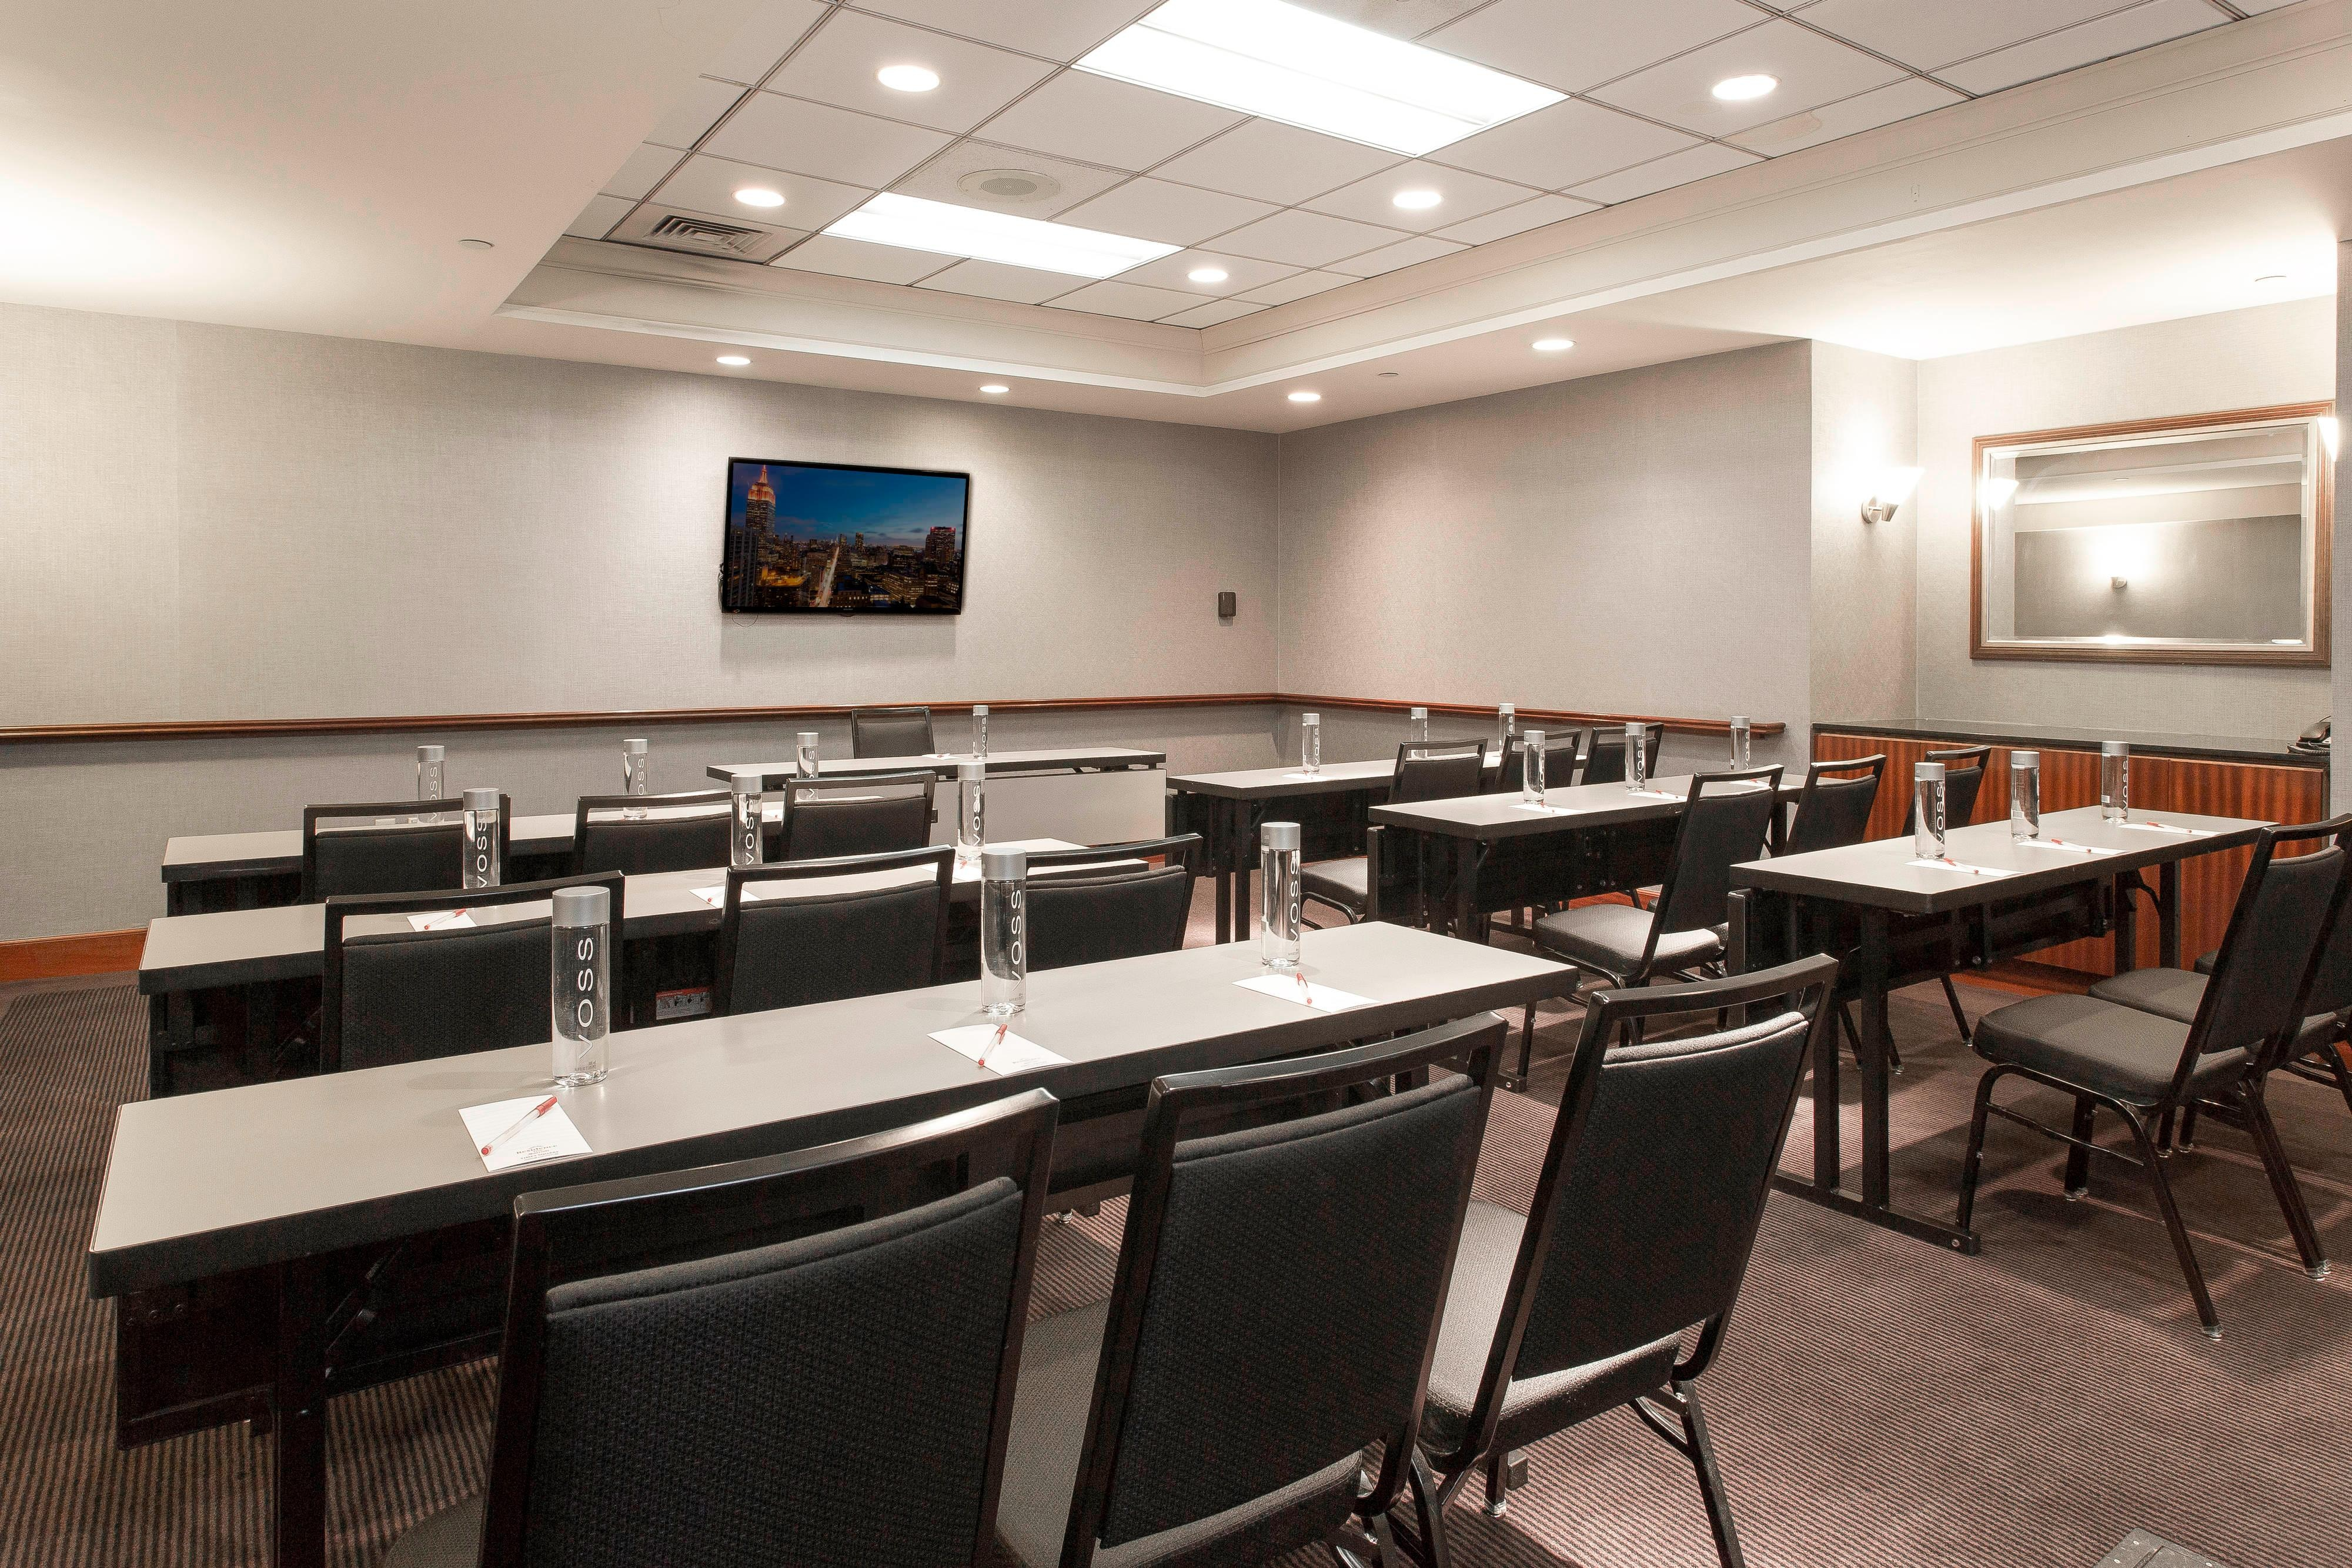 Classroom setup of meeting space located in Times Square